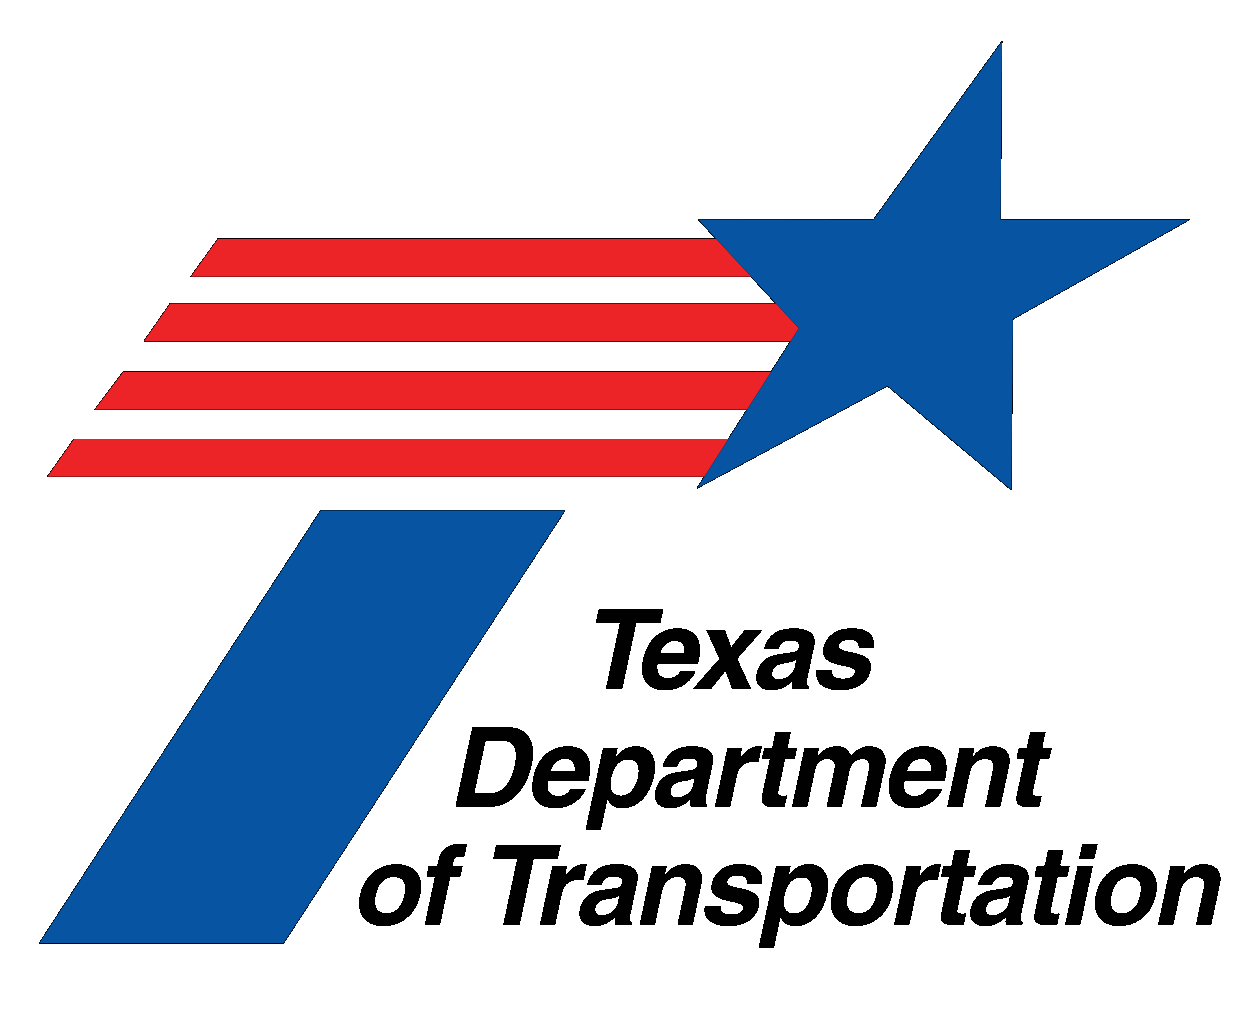 Photo by Texas Department of Transportation